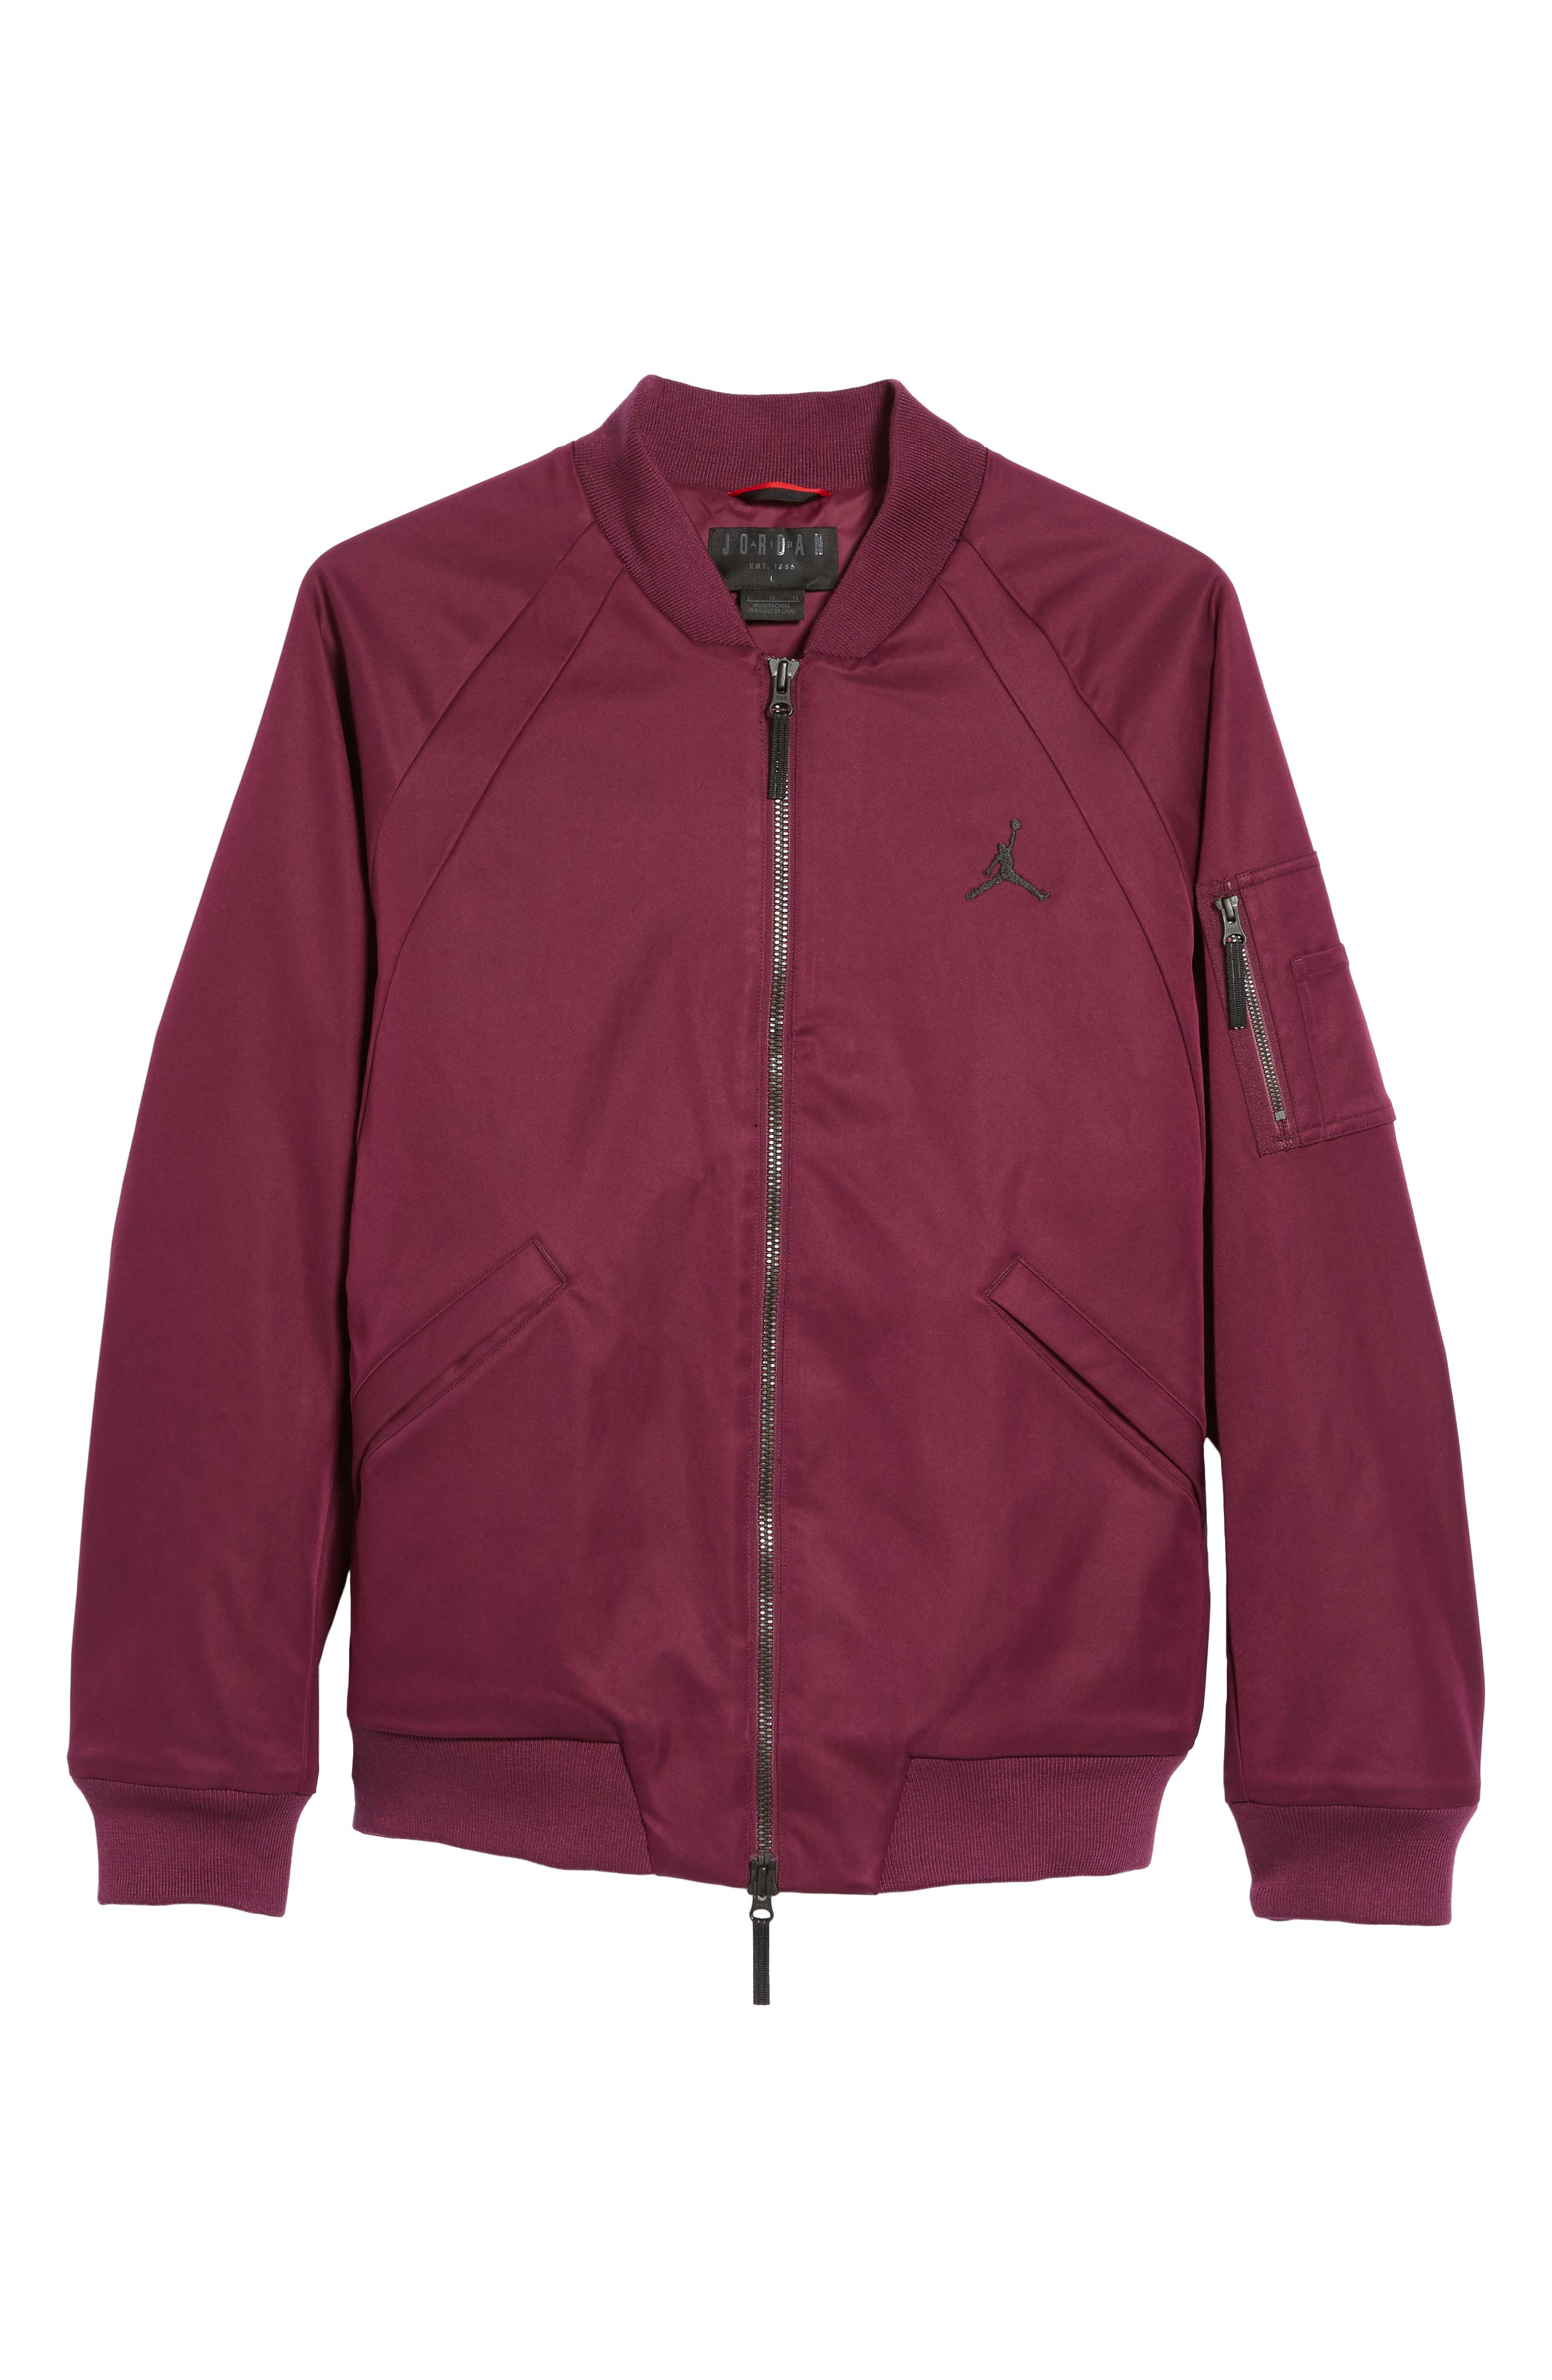 Sportswear Wings MA-1 Bomber Jacket,                             Alternate thumbnail 15, color,